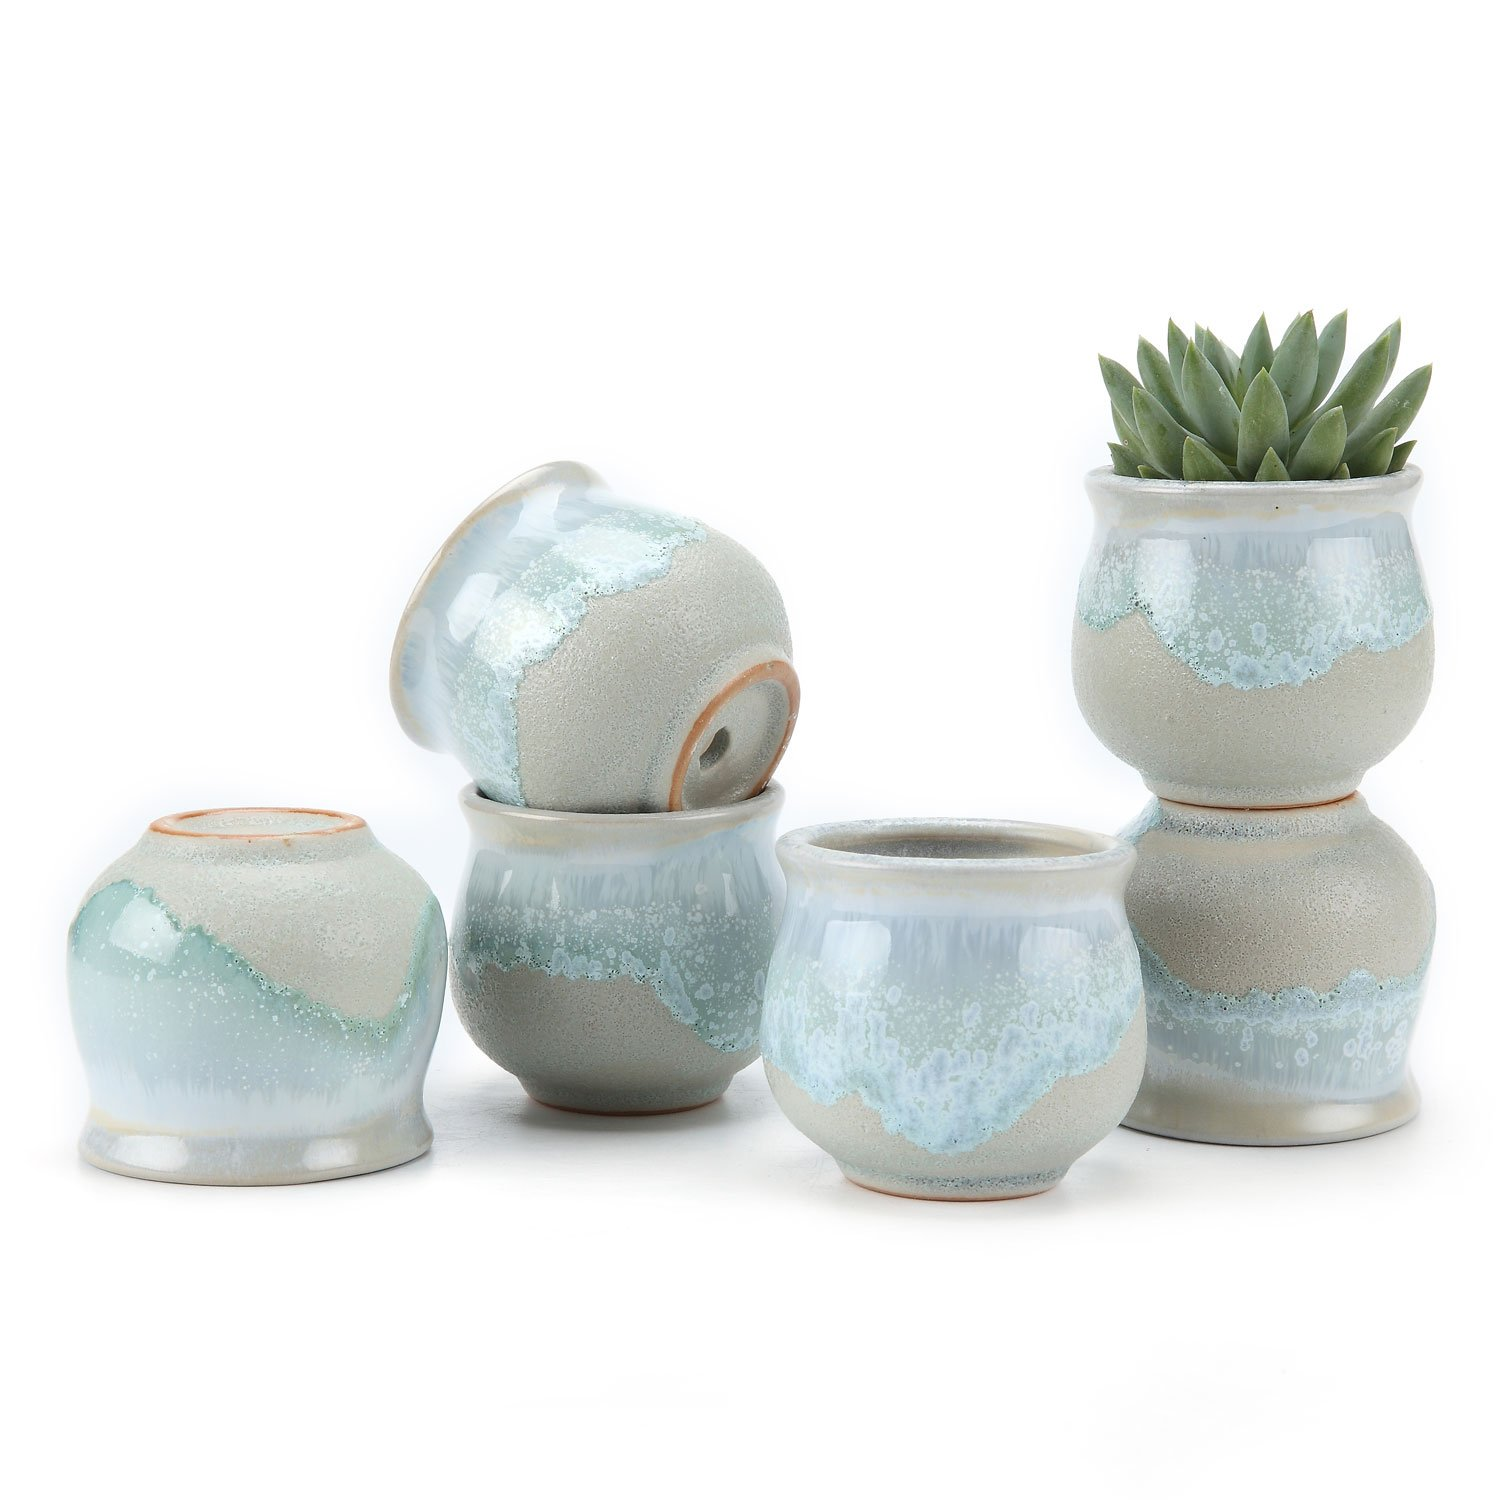 T4U 2.5 Inch Ceramic Flowing Glaze Solid Gray Base Serial Open Mouth Shape Succulent Plant Pot/Cactus Plant Pot Flower Pot/Container/Planter Package 1 Pack of 6 by T4U